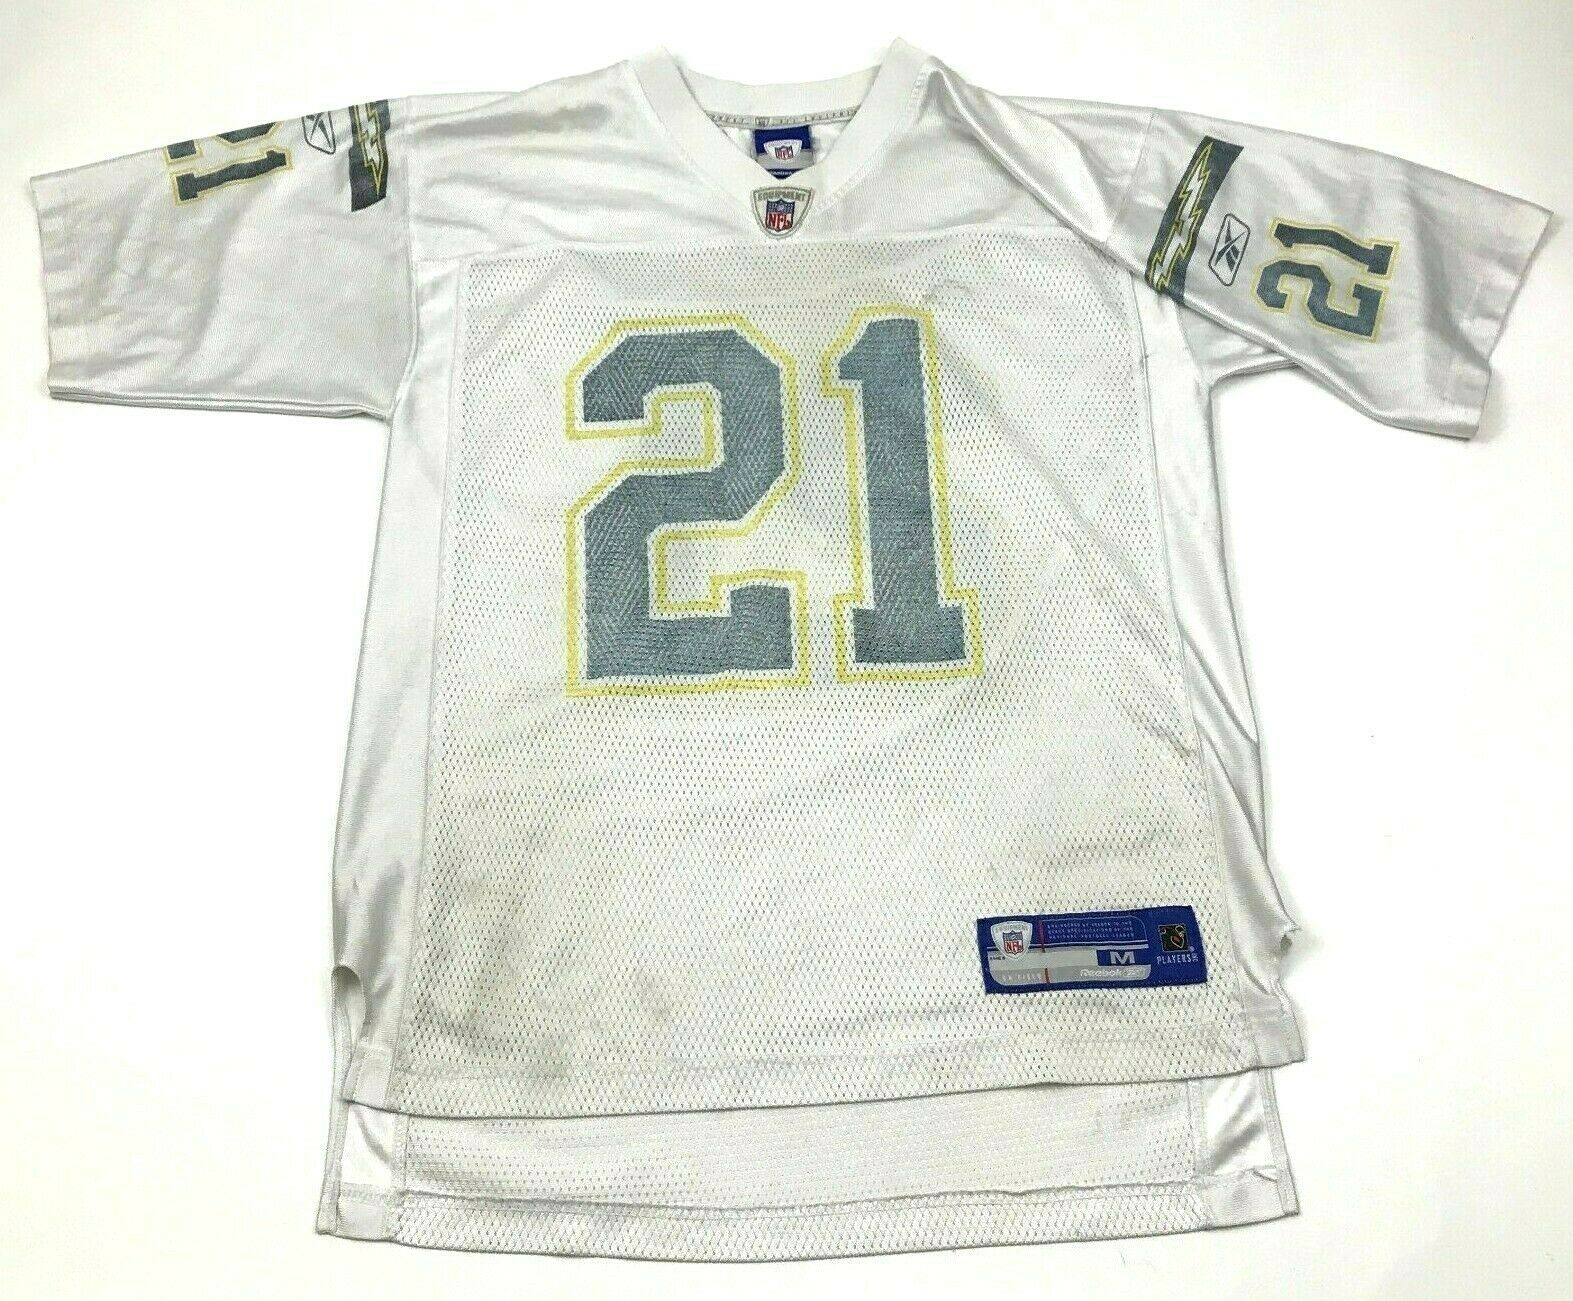 Primary image for VINTAGE Reebok LaDainian Tomlinson San Diego Chargers Football Jersey Size Med M